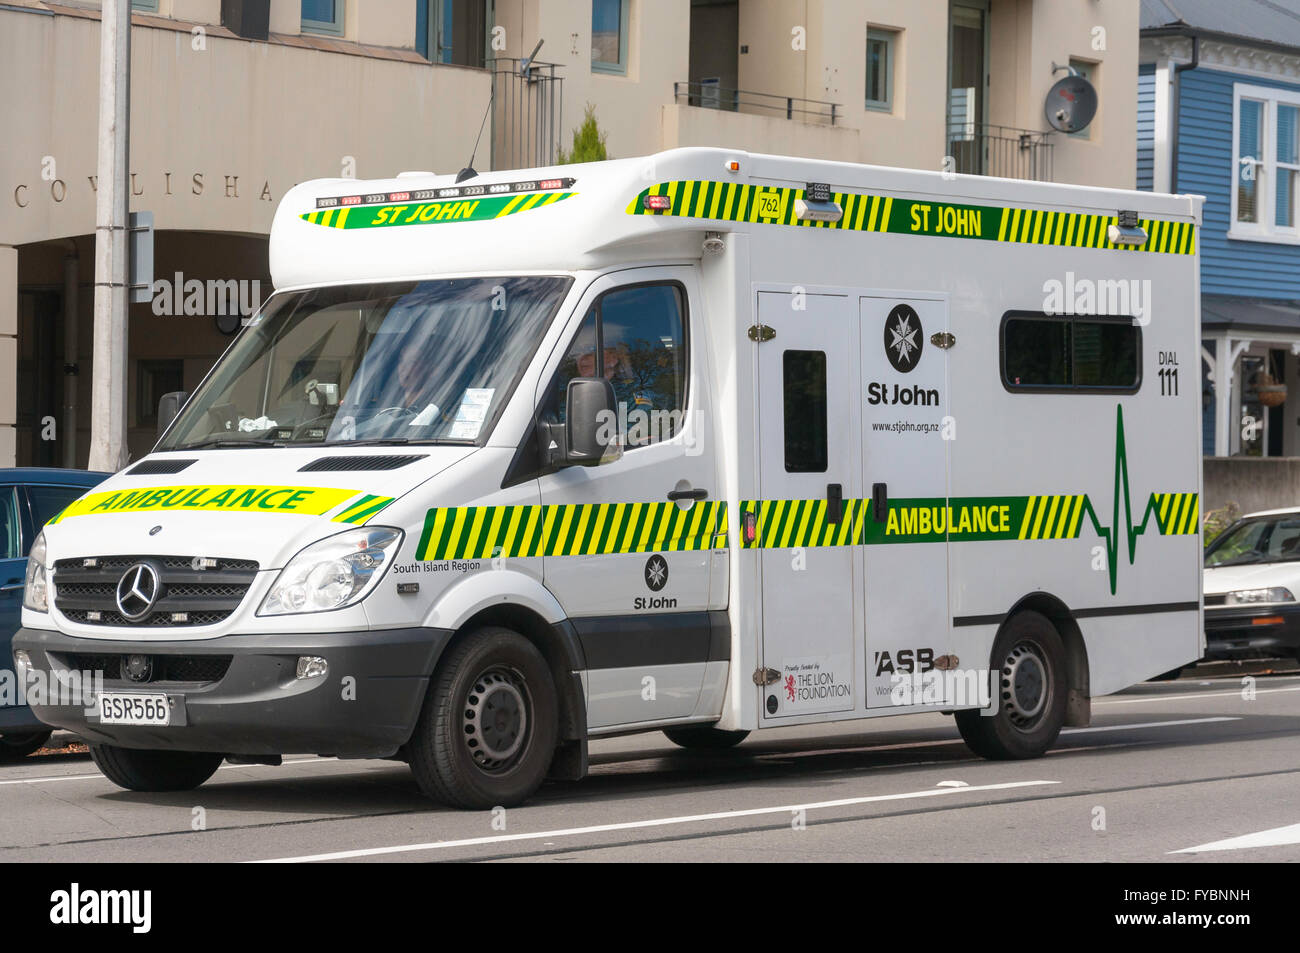 how to thank paramedics st john ambulance